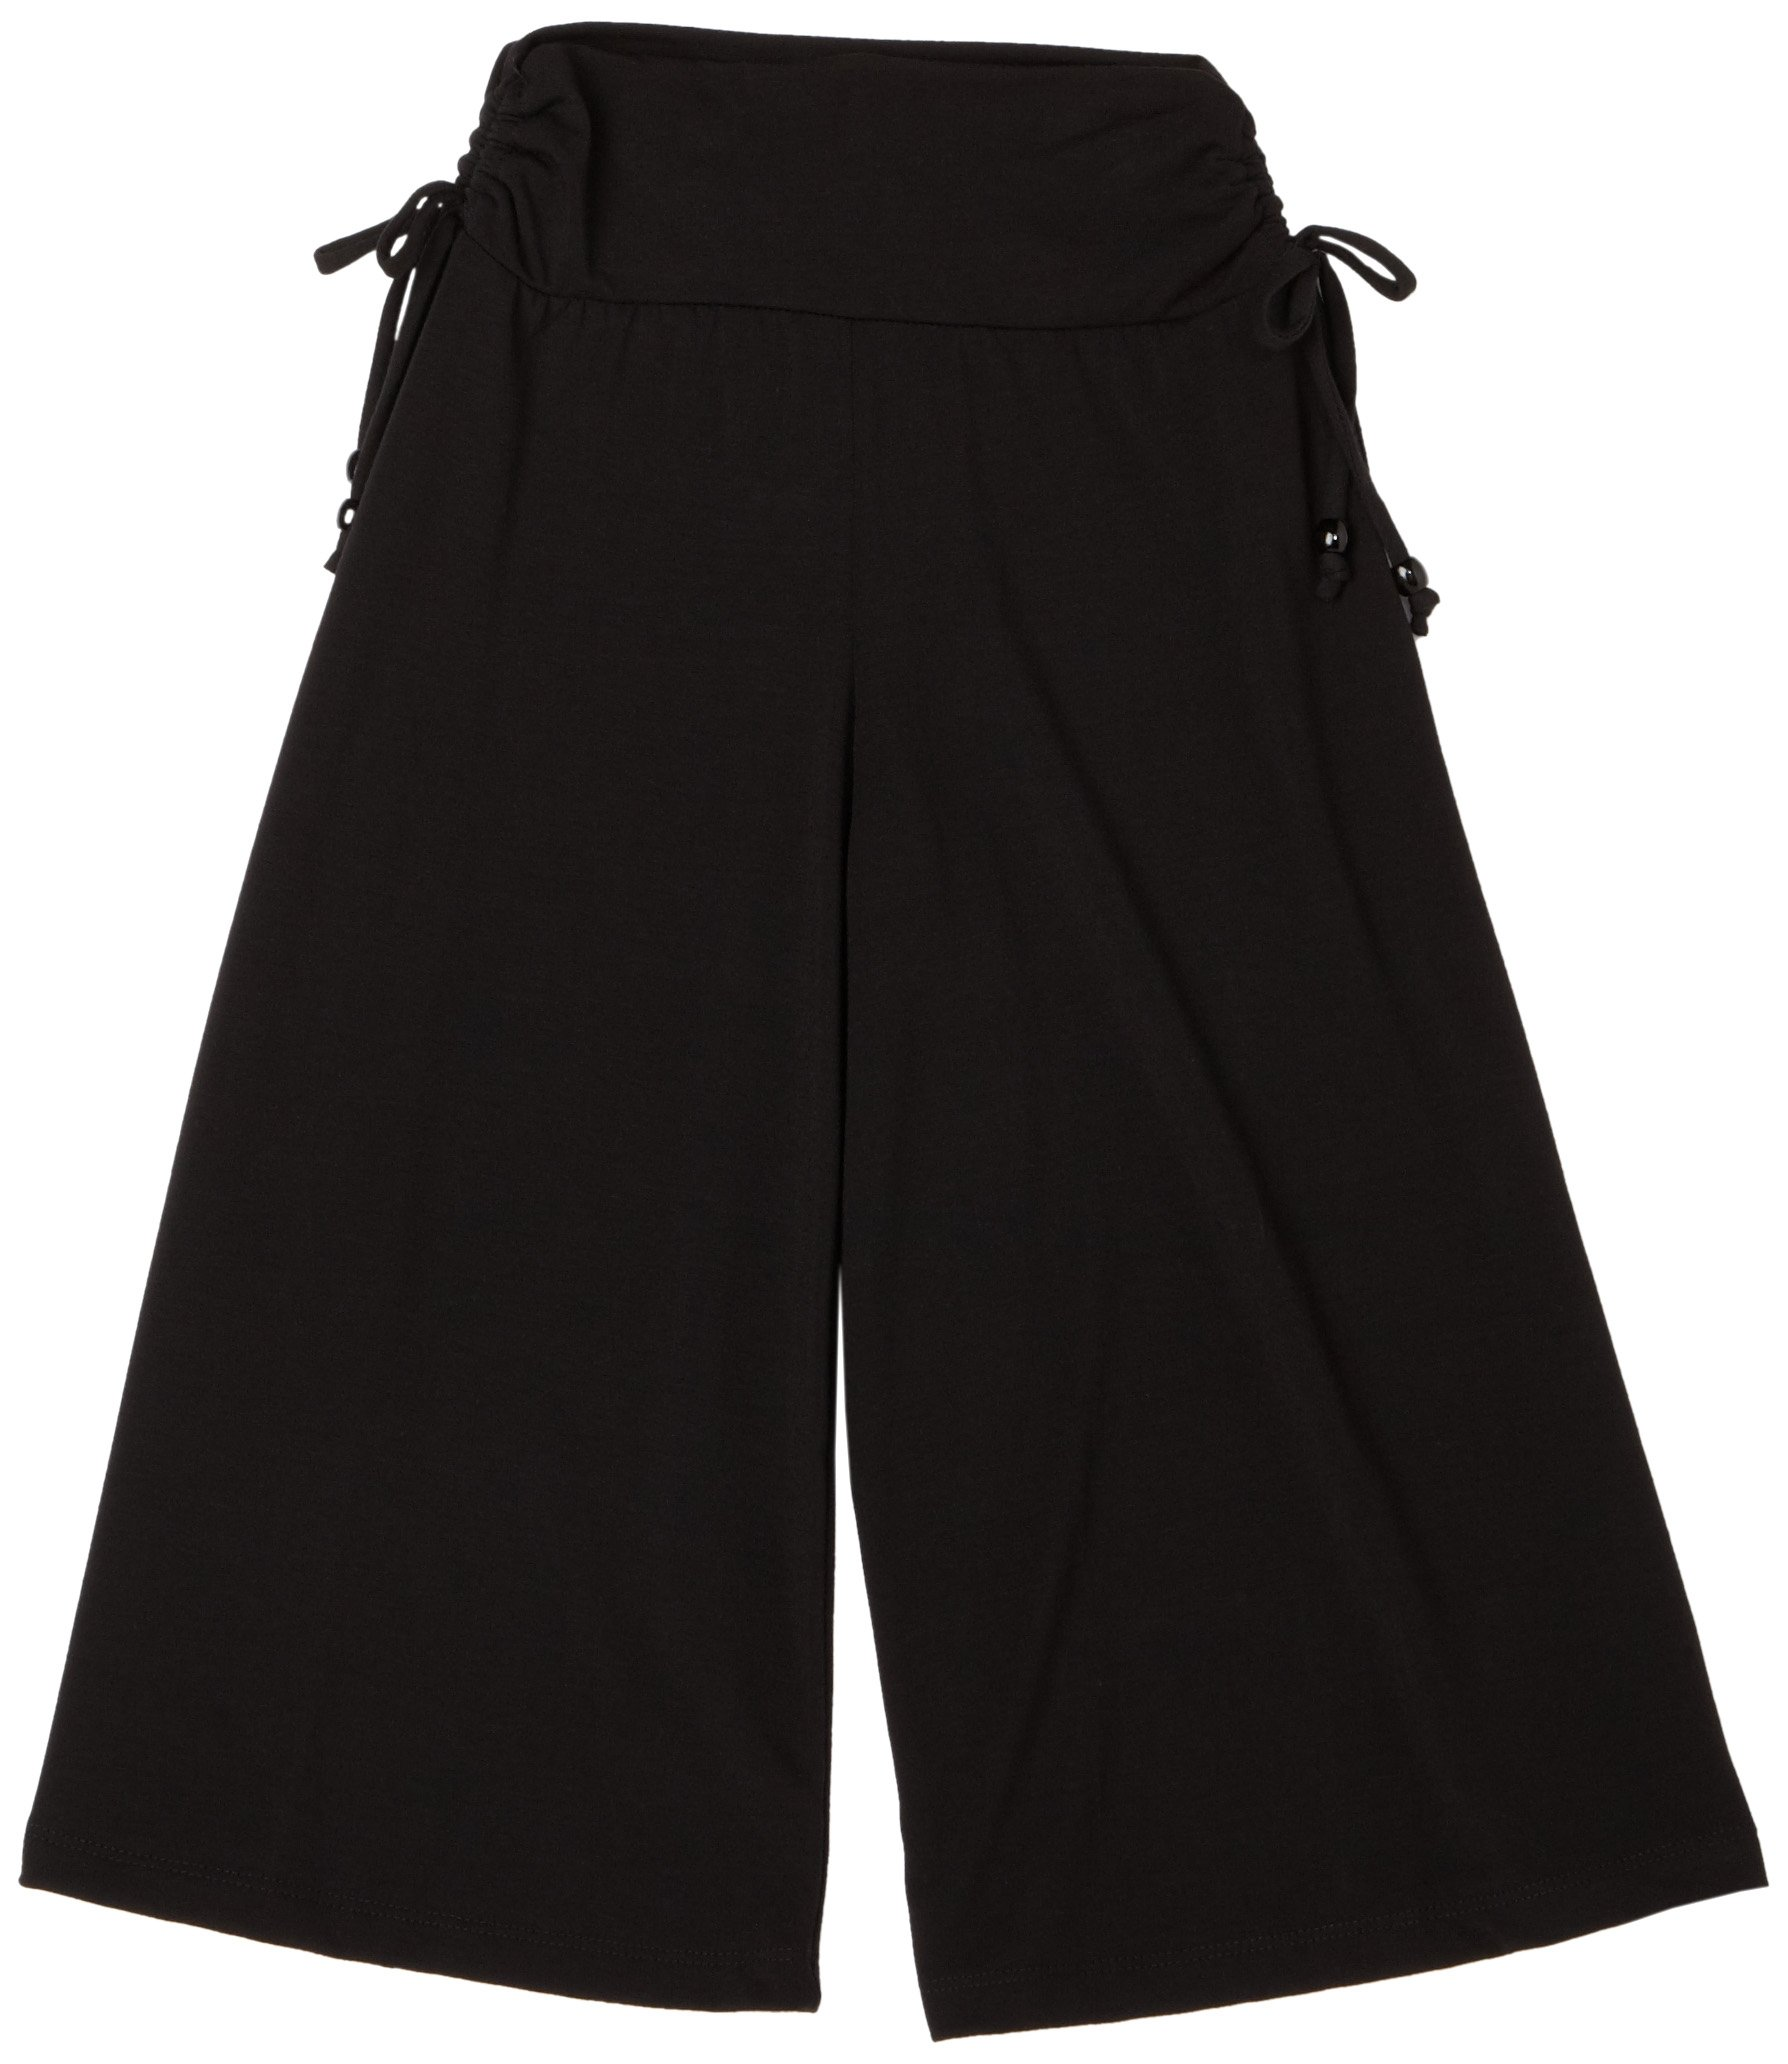 Amy Byer Girls' Soft Knit Wide Leg Gaucho Pants, Black, Small by Amy Byer (Image #1)